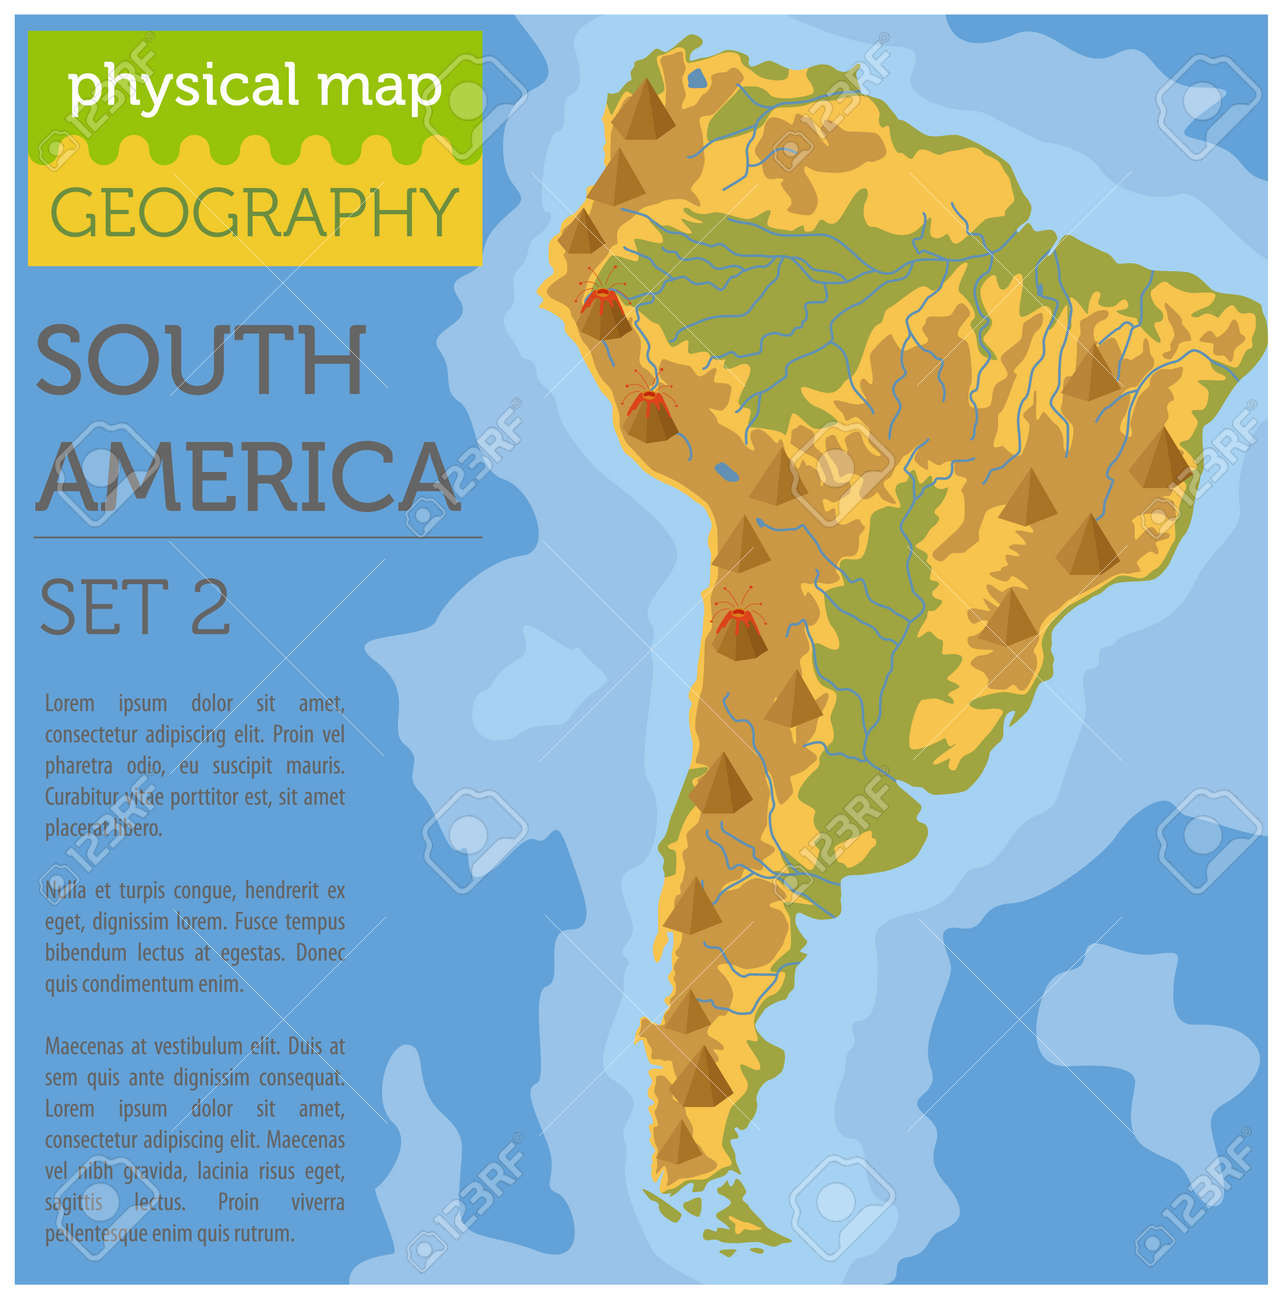 South America physical map elements. Build your own geography.. on countries of south america, languages of south america, major exports of south america, area of south america, geographical features asia, geographical features africa, customs of south america, clothing of south america, physical features of america, geographical map of latin america, mountains in south america, people of south america, industry of south america, rivers of south america, geographic regions of south america, detailed map south america, historic sites of south america, list lakes in south america, roads of south america, physical characteristics of south america,